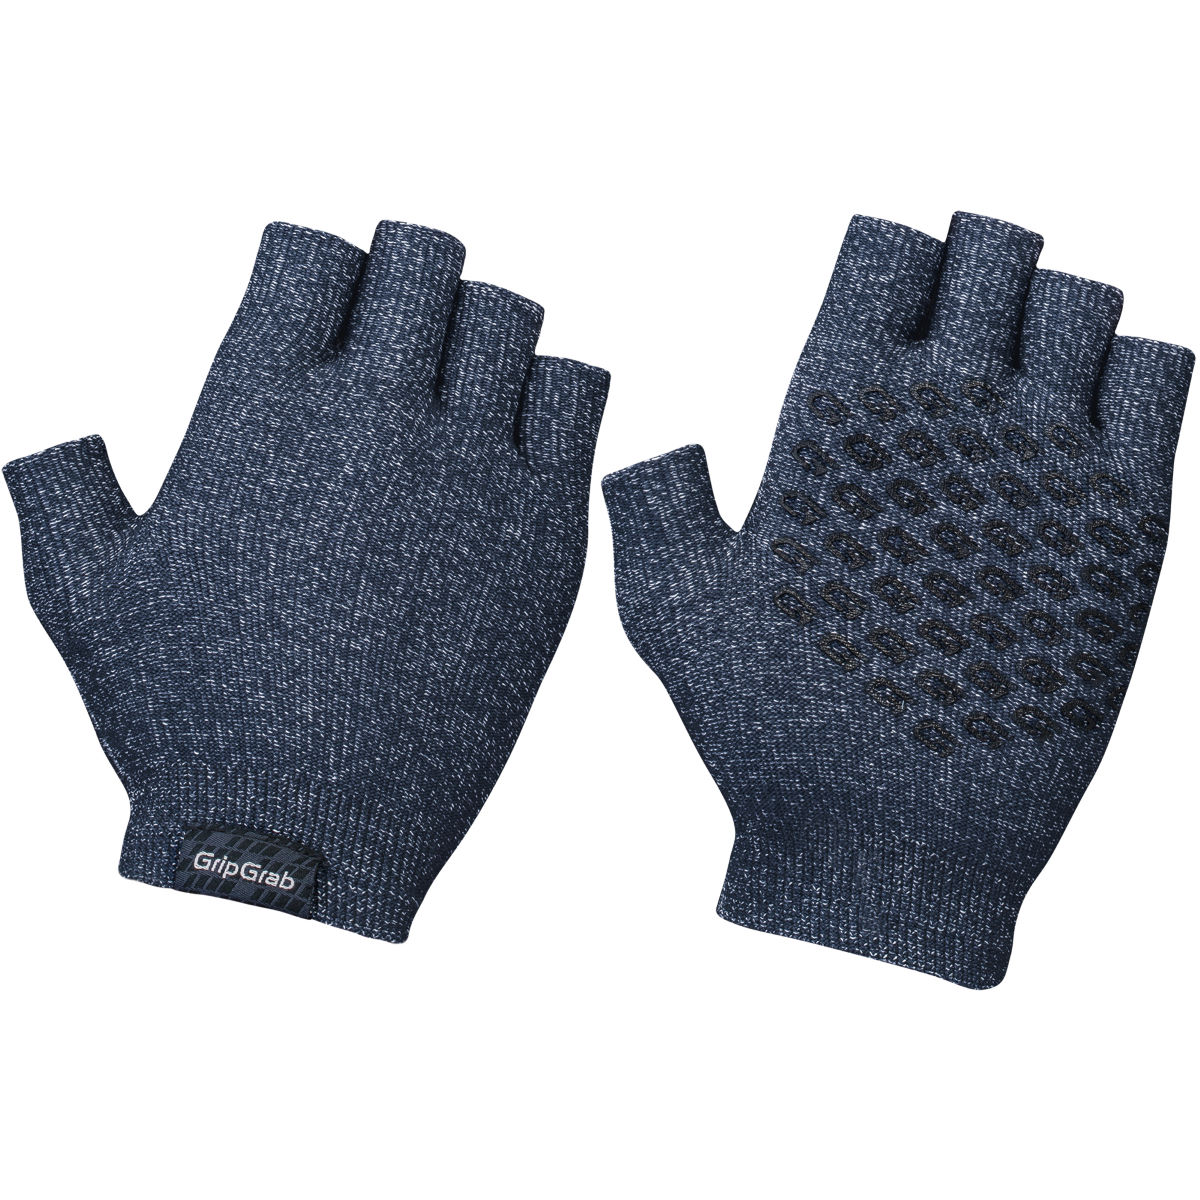 Gripgrab Freedom Knitted Cycling Gloves - M/l Navy  Gloves